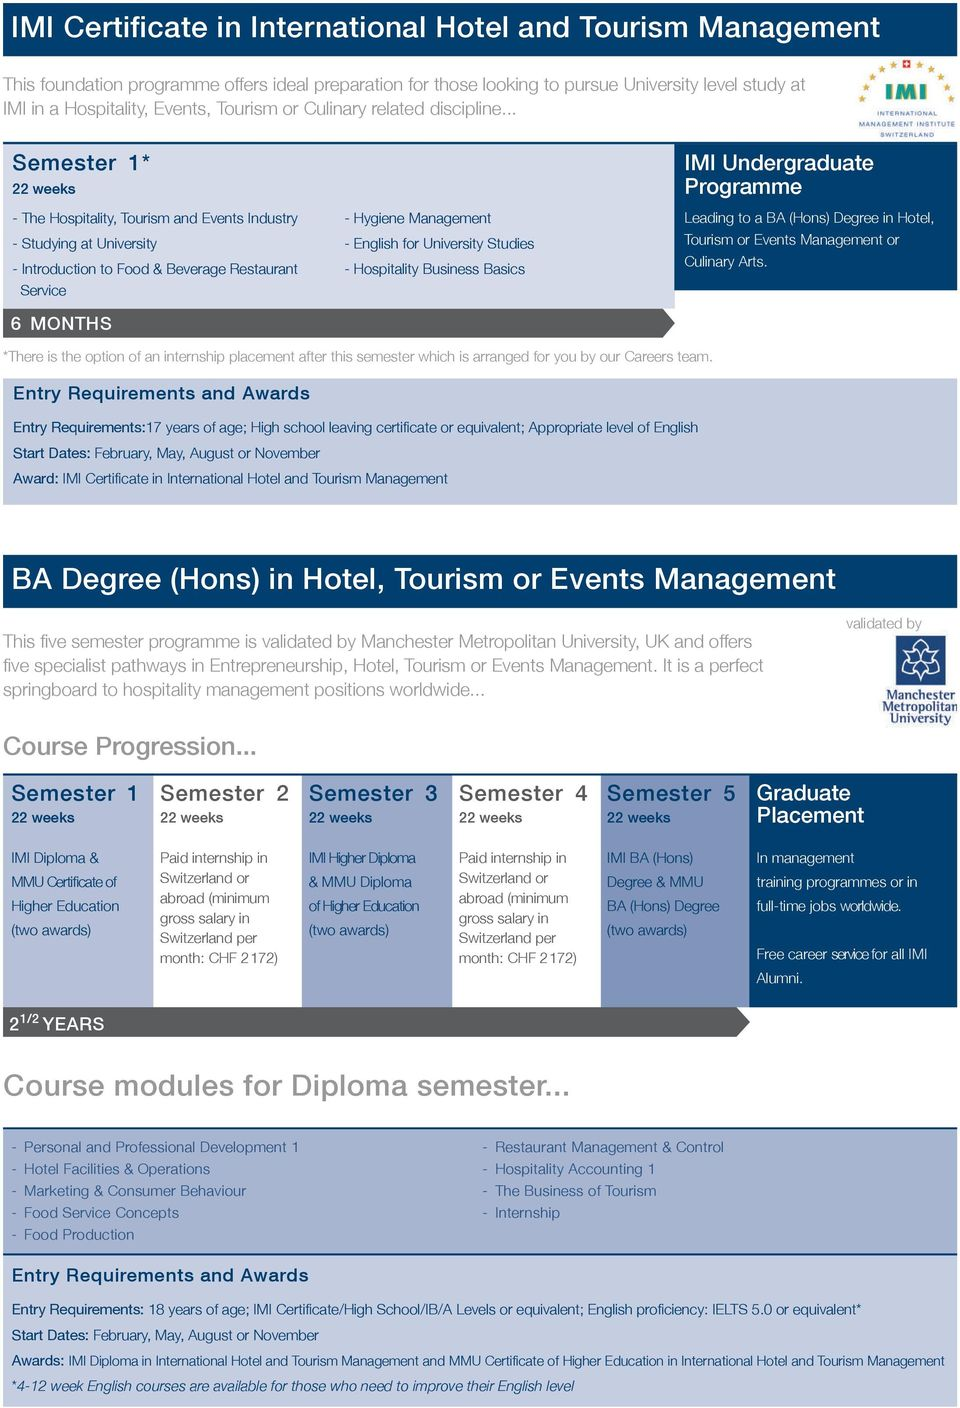 .. Semester 1* - The Hospitality, Tourism and Events Industry - Studying at University - Introduction to Food & Beverage Restaurant Service 6 MONTHS - Hygiene Management - English for University